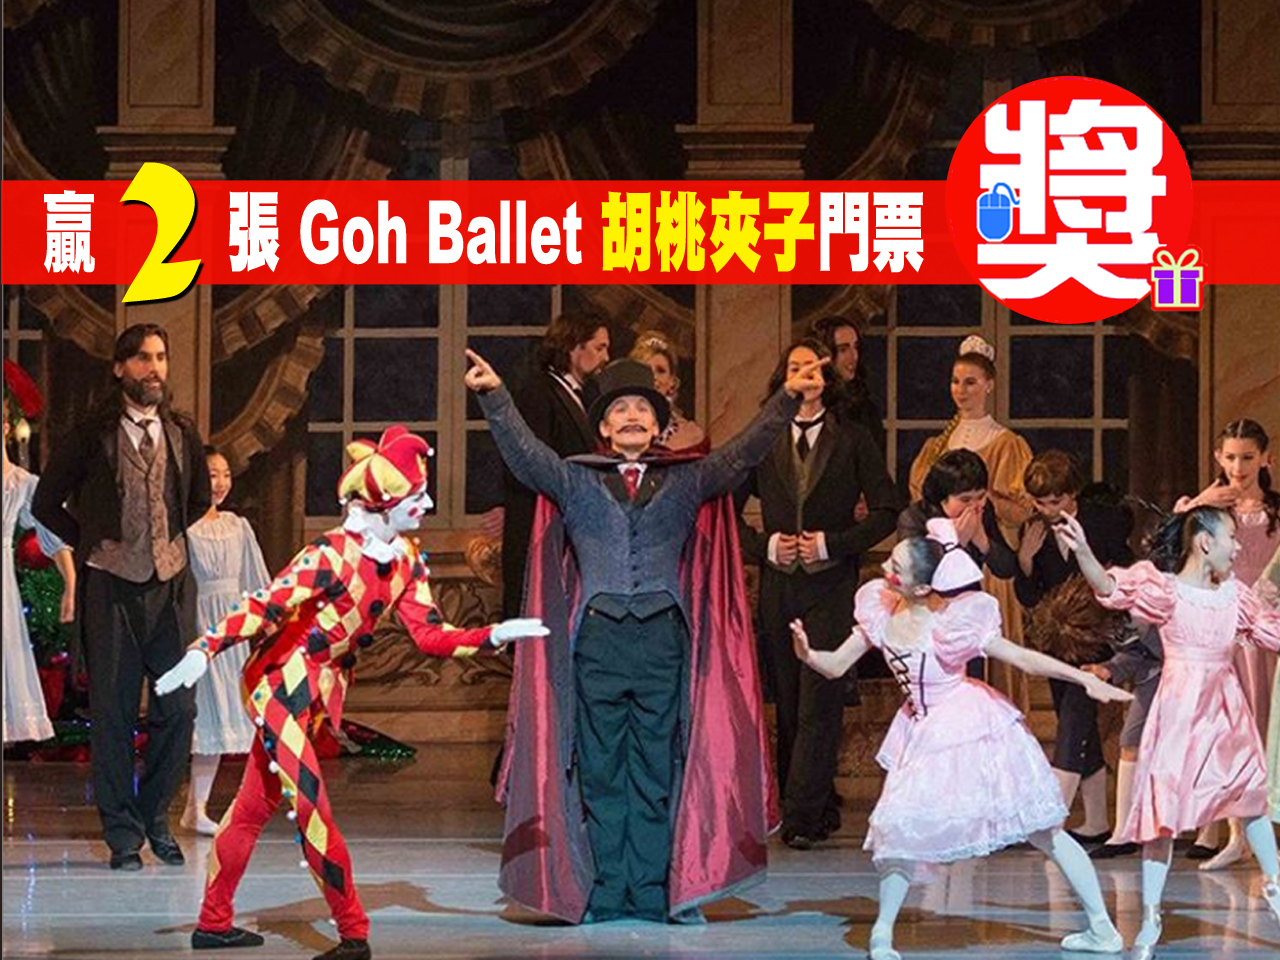 贏 2 張 Goh Ballet The Nutcracker 入場券 [已完結]